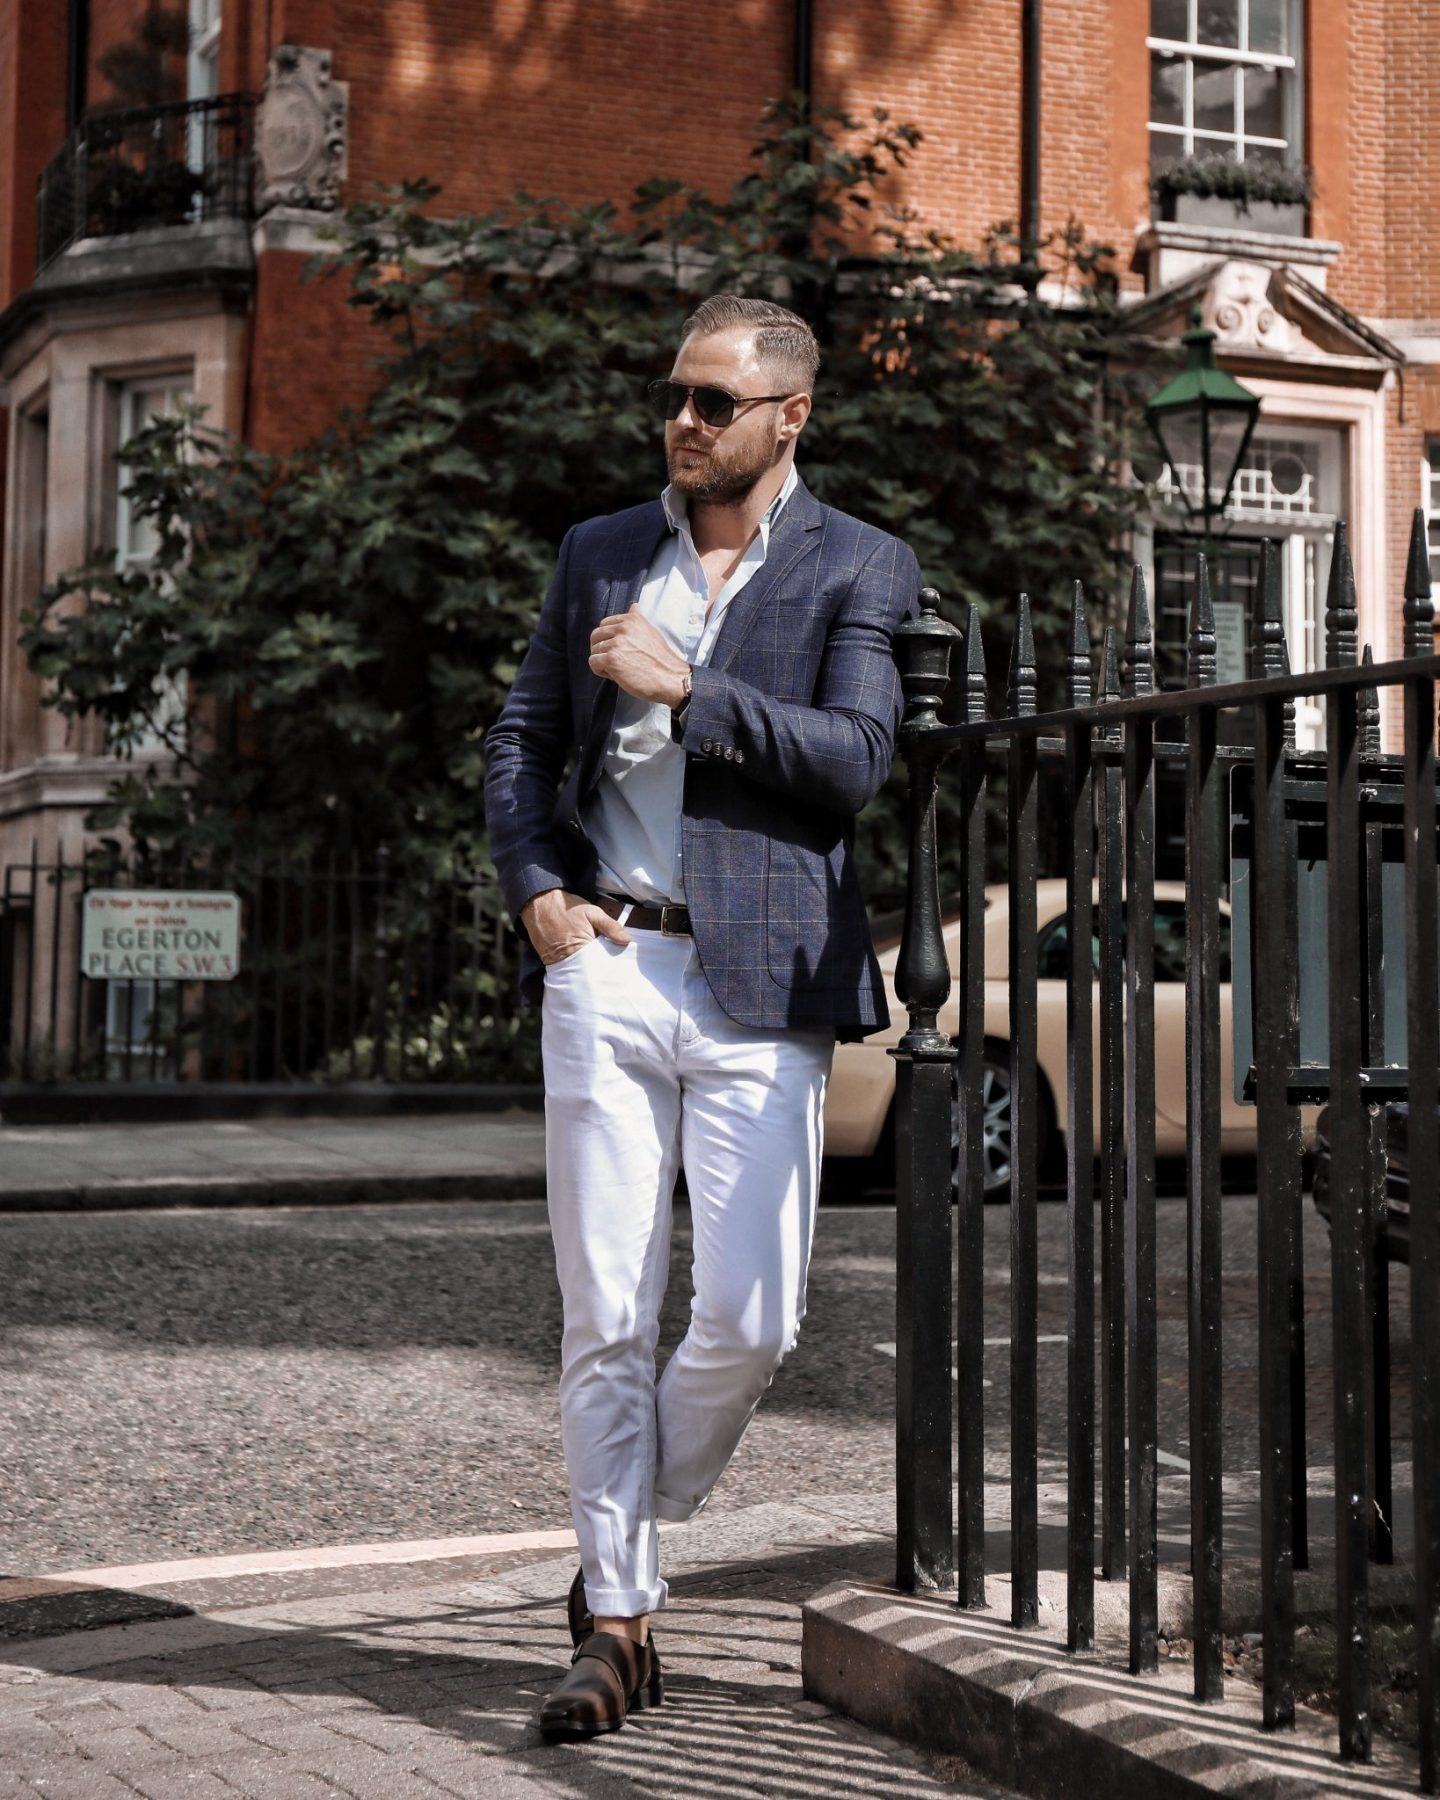 Jaeger Blazer Gucci Sunglasses Reiss Shirt Goodwin Smith Menswear Fashion Outfit